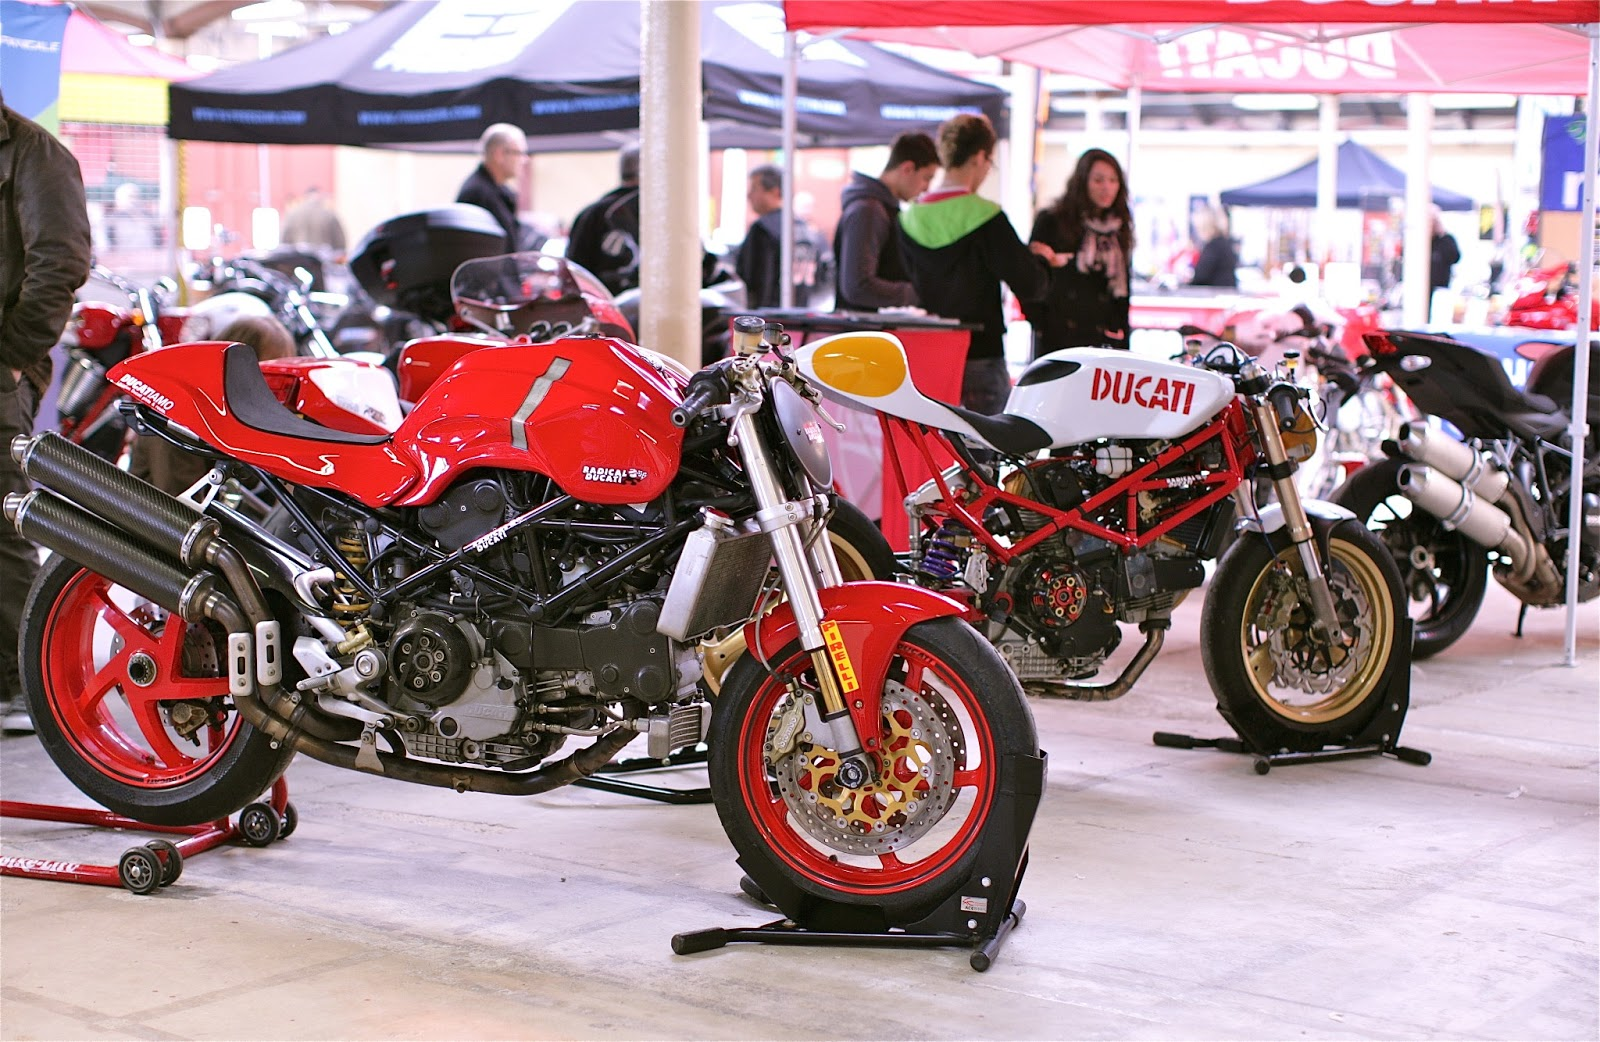 radical ducati s l stand ducatiamo aux salon moto de valence manx et 9. Black Bedroom Furniture Sets. Home Design Ideas